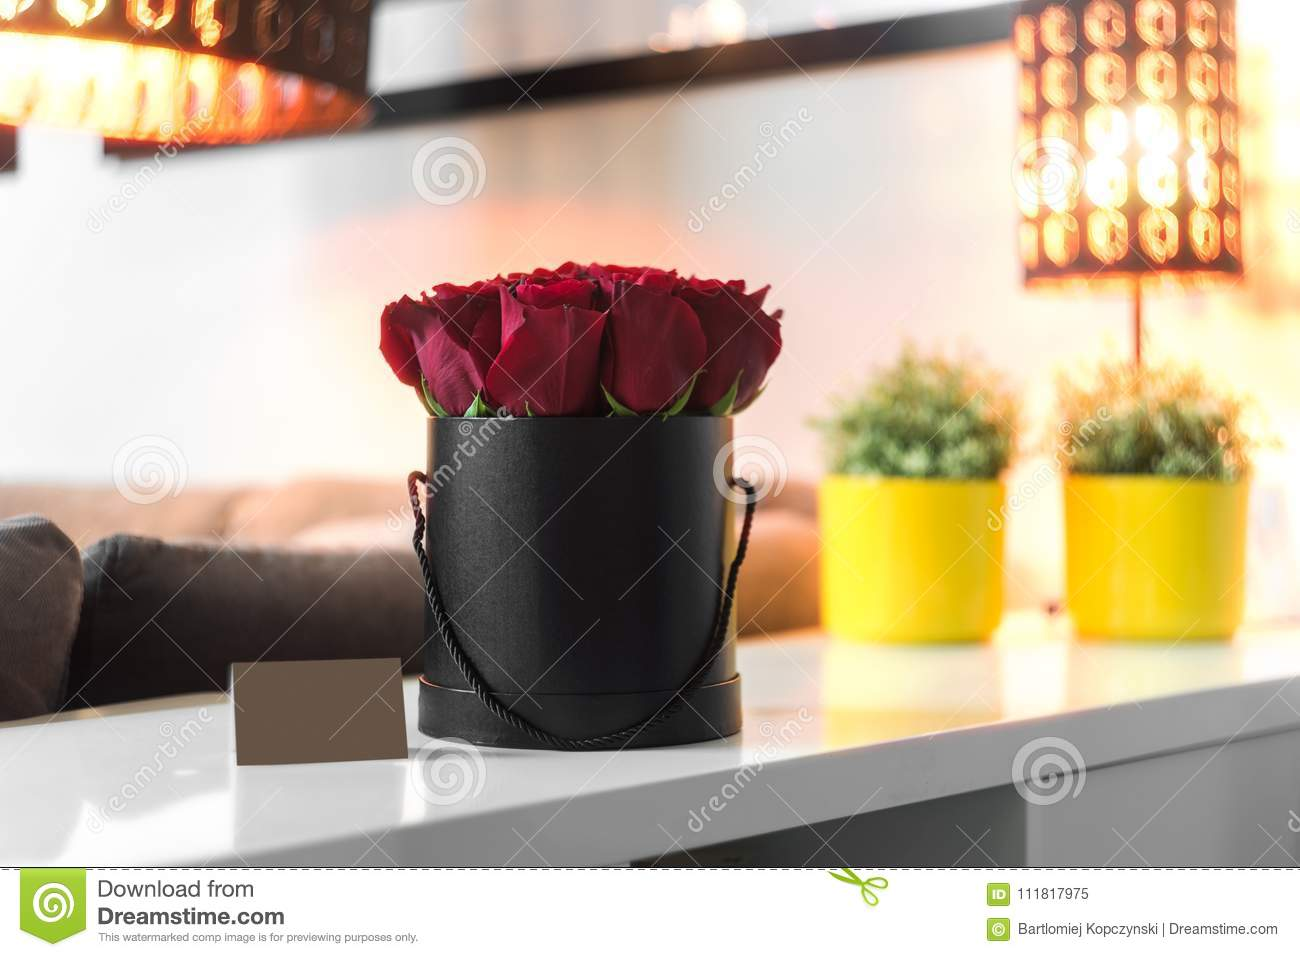 Bouquet Of Red Roses In Black Box Stock Image Image Of Paper Roses 111817975